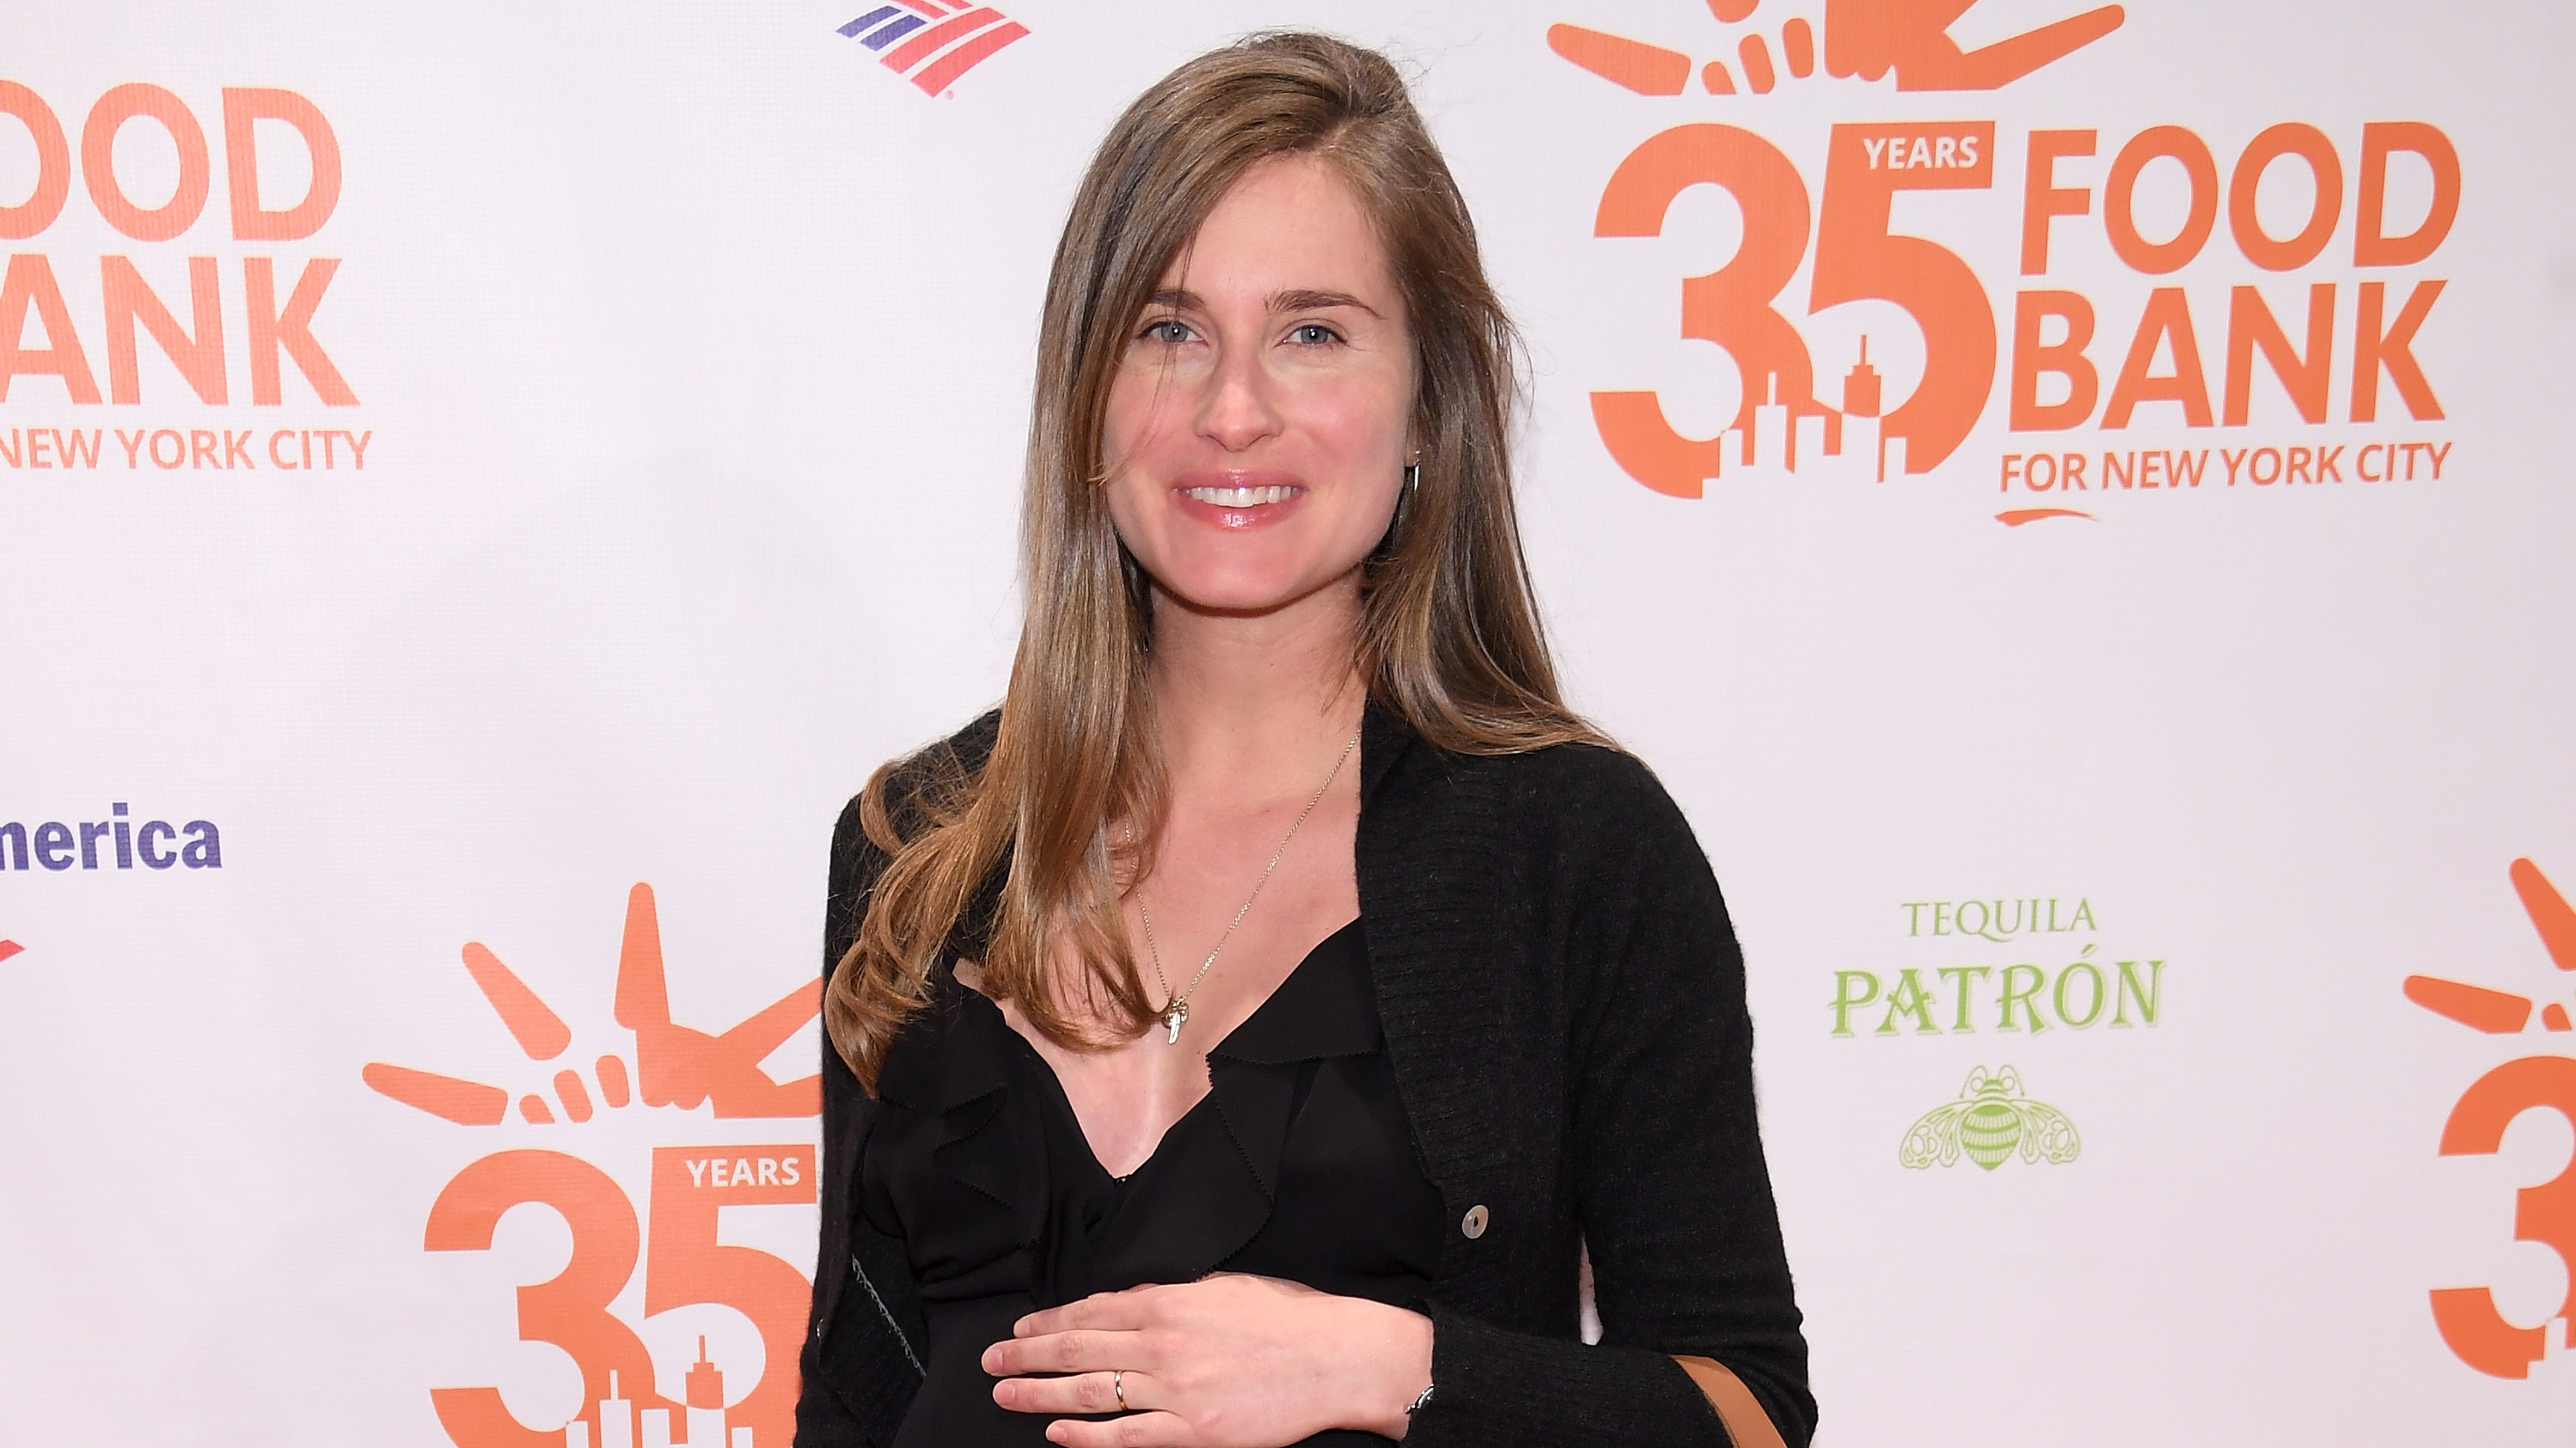 Lauren Bush Lauren, the founder of FEED, at the Food Bank for New York City's Can Do Awards Dinner in April. (Dimitrios Kambouris/Getty Images)